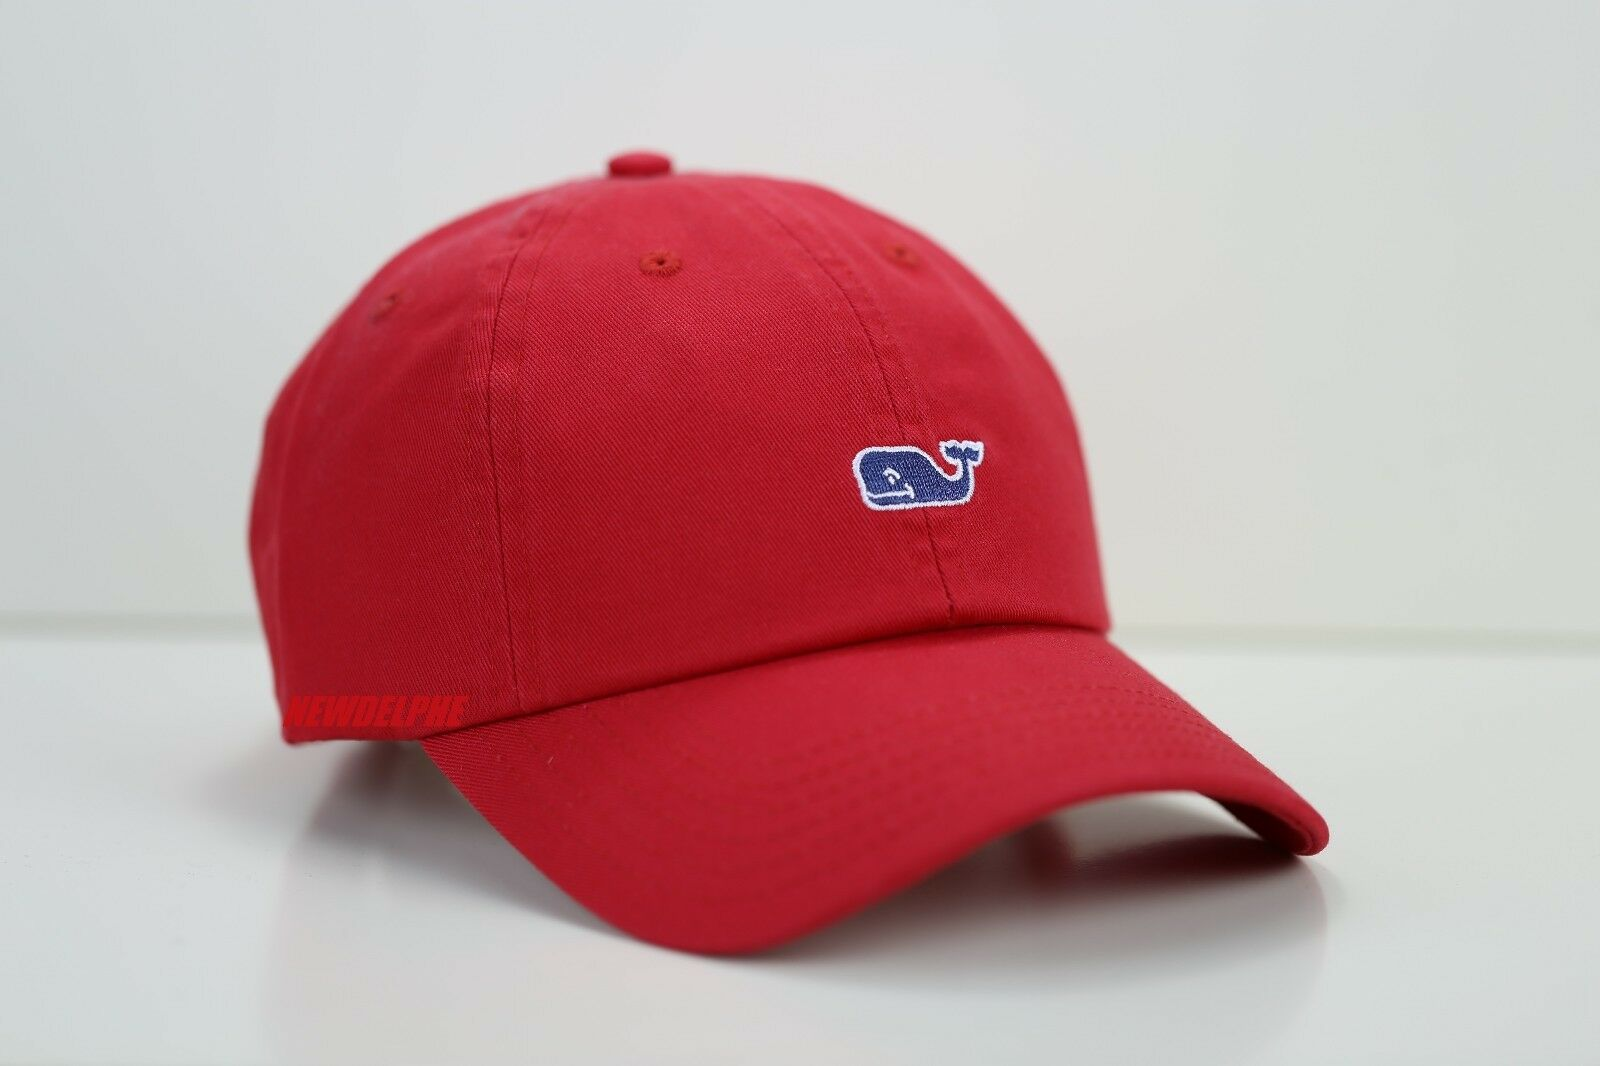 68584d7065e Vineyard Vines Mens Parade Red Navy Whale Classic Washed Baseball Cap Hat